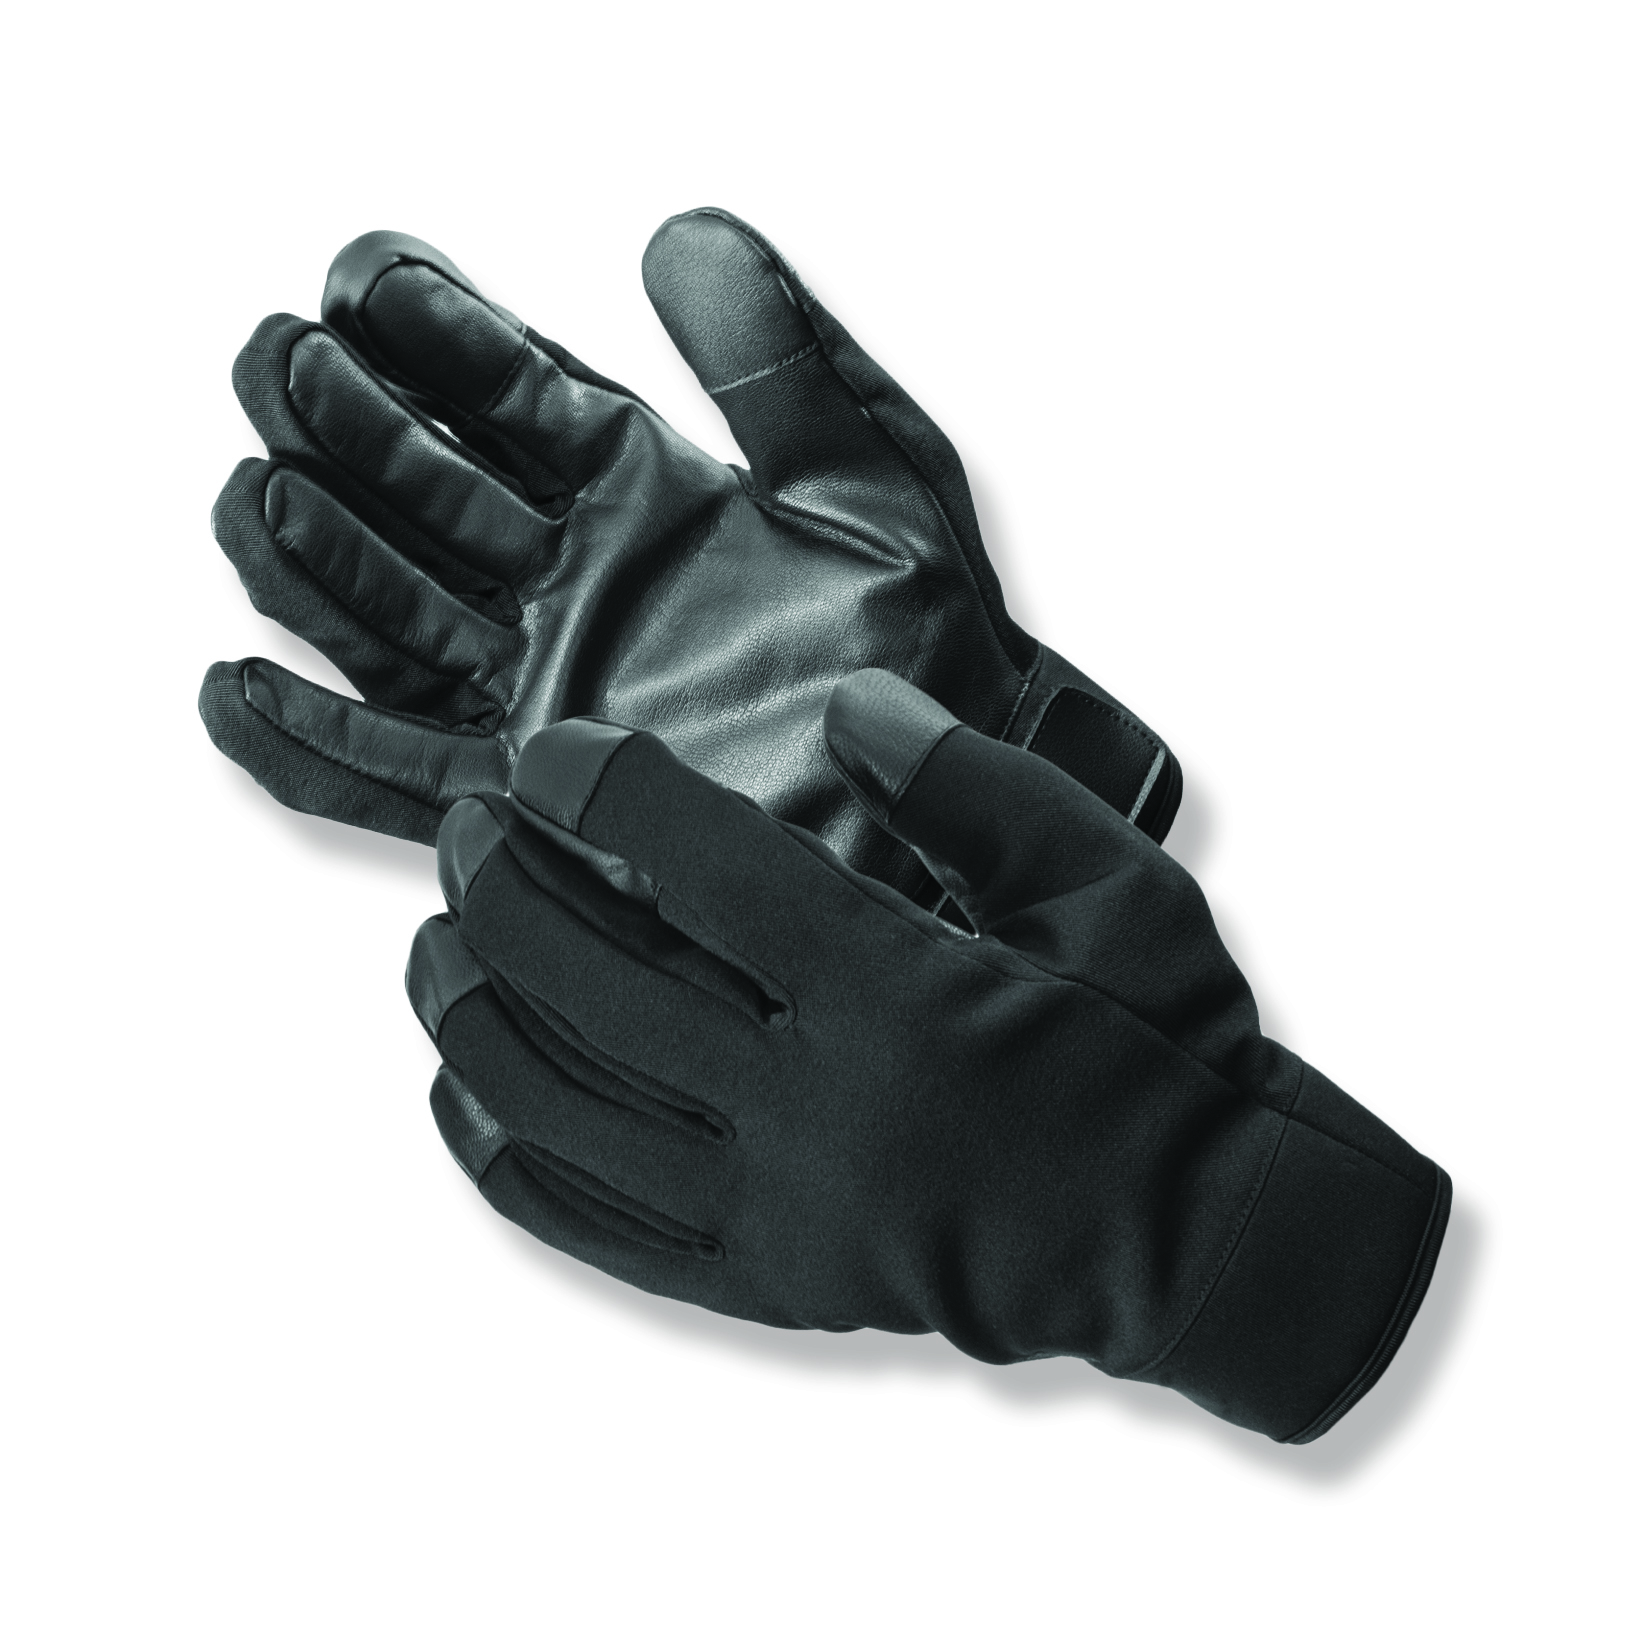 Transit TS™ Leather Palm Spandex Shell Uniform Gloves feature 40 gram Thinsulate